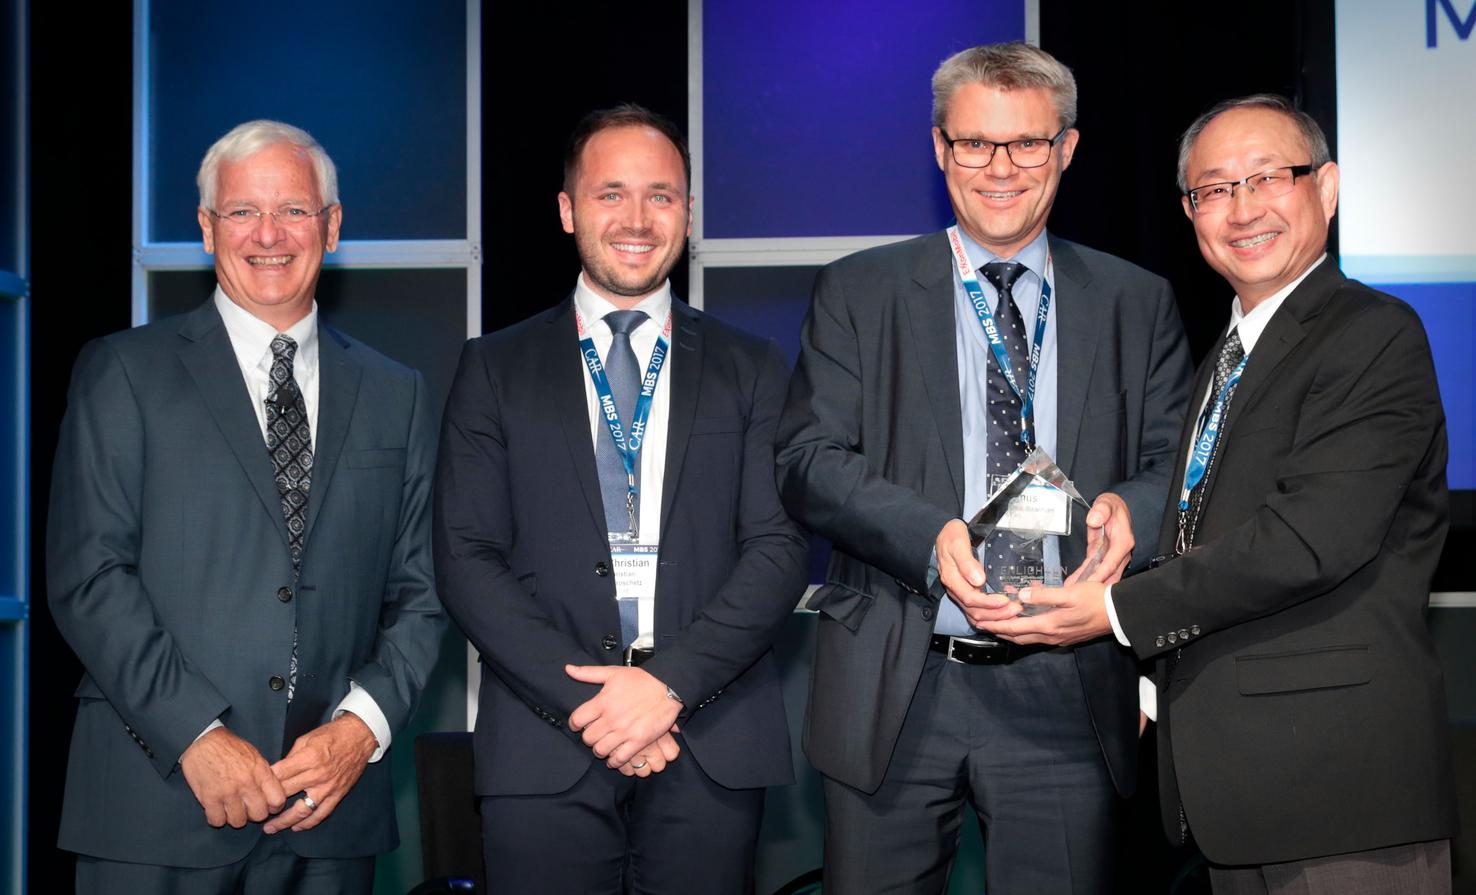 Proud winners and organizers: From left, Judging Chair Dr. Jay Baron, president and CEO of CAR (Center for Automotive Research); Dr. Christian Koroschetz, CTO, Technology Development at AP&T; Magnus Baarman, CEO at AP&T and Richard Yen, senior vice president, Automotive and Global Markets Team at Altair.